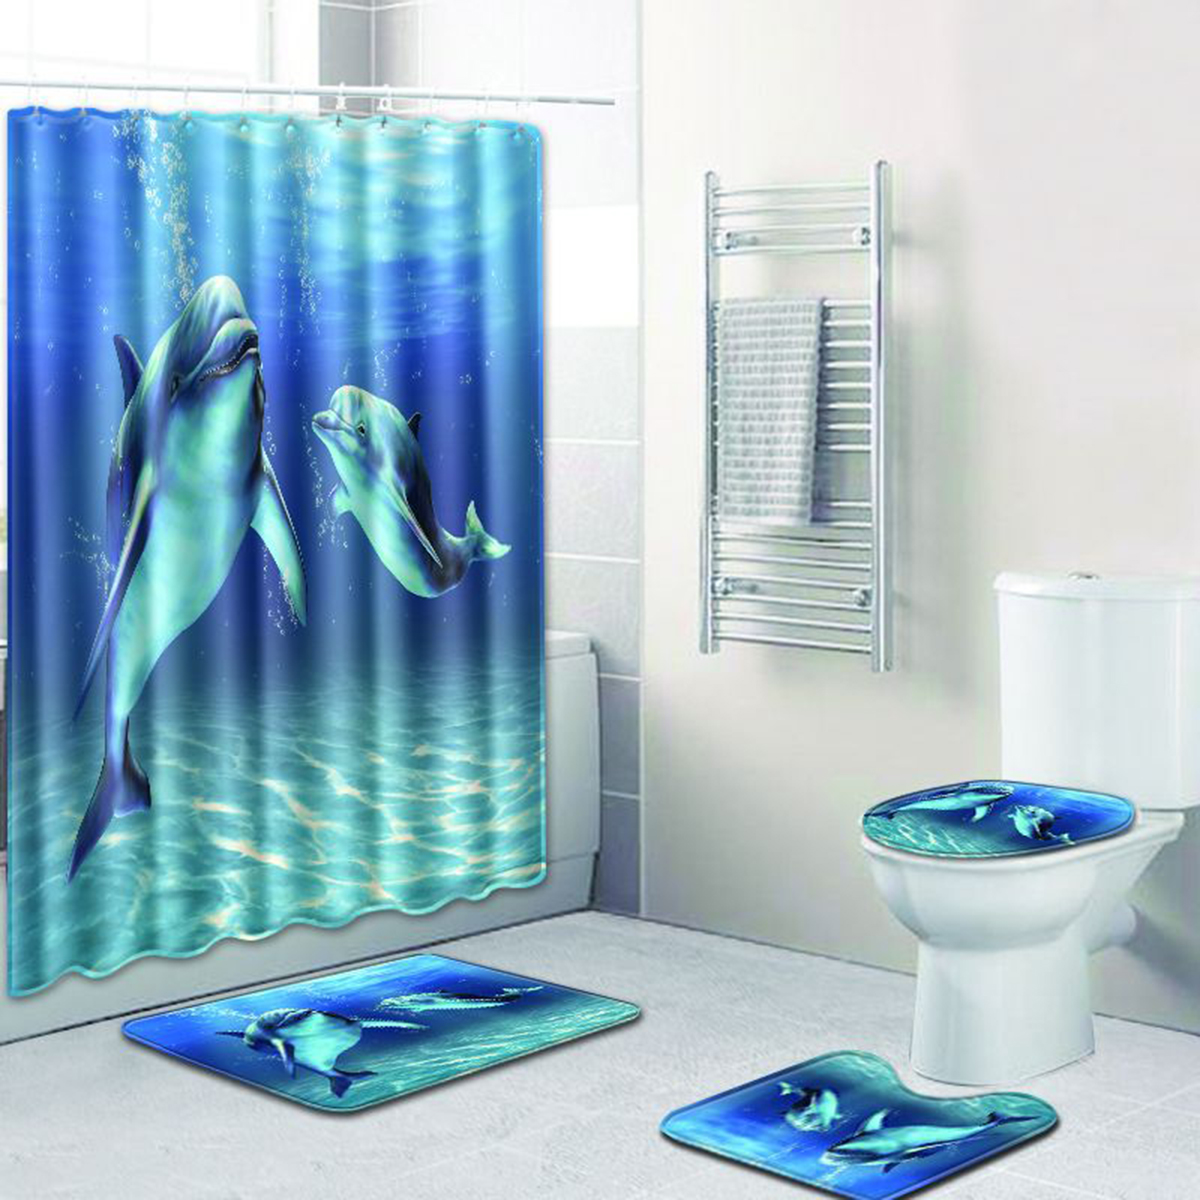 Details About 12 Hooks Dolphin Sea Waterproof Shower Curtain Bathroom Floor Mat Toilet Set